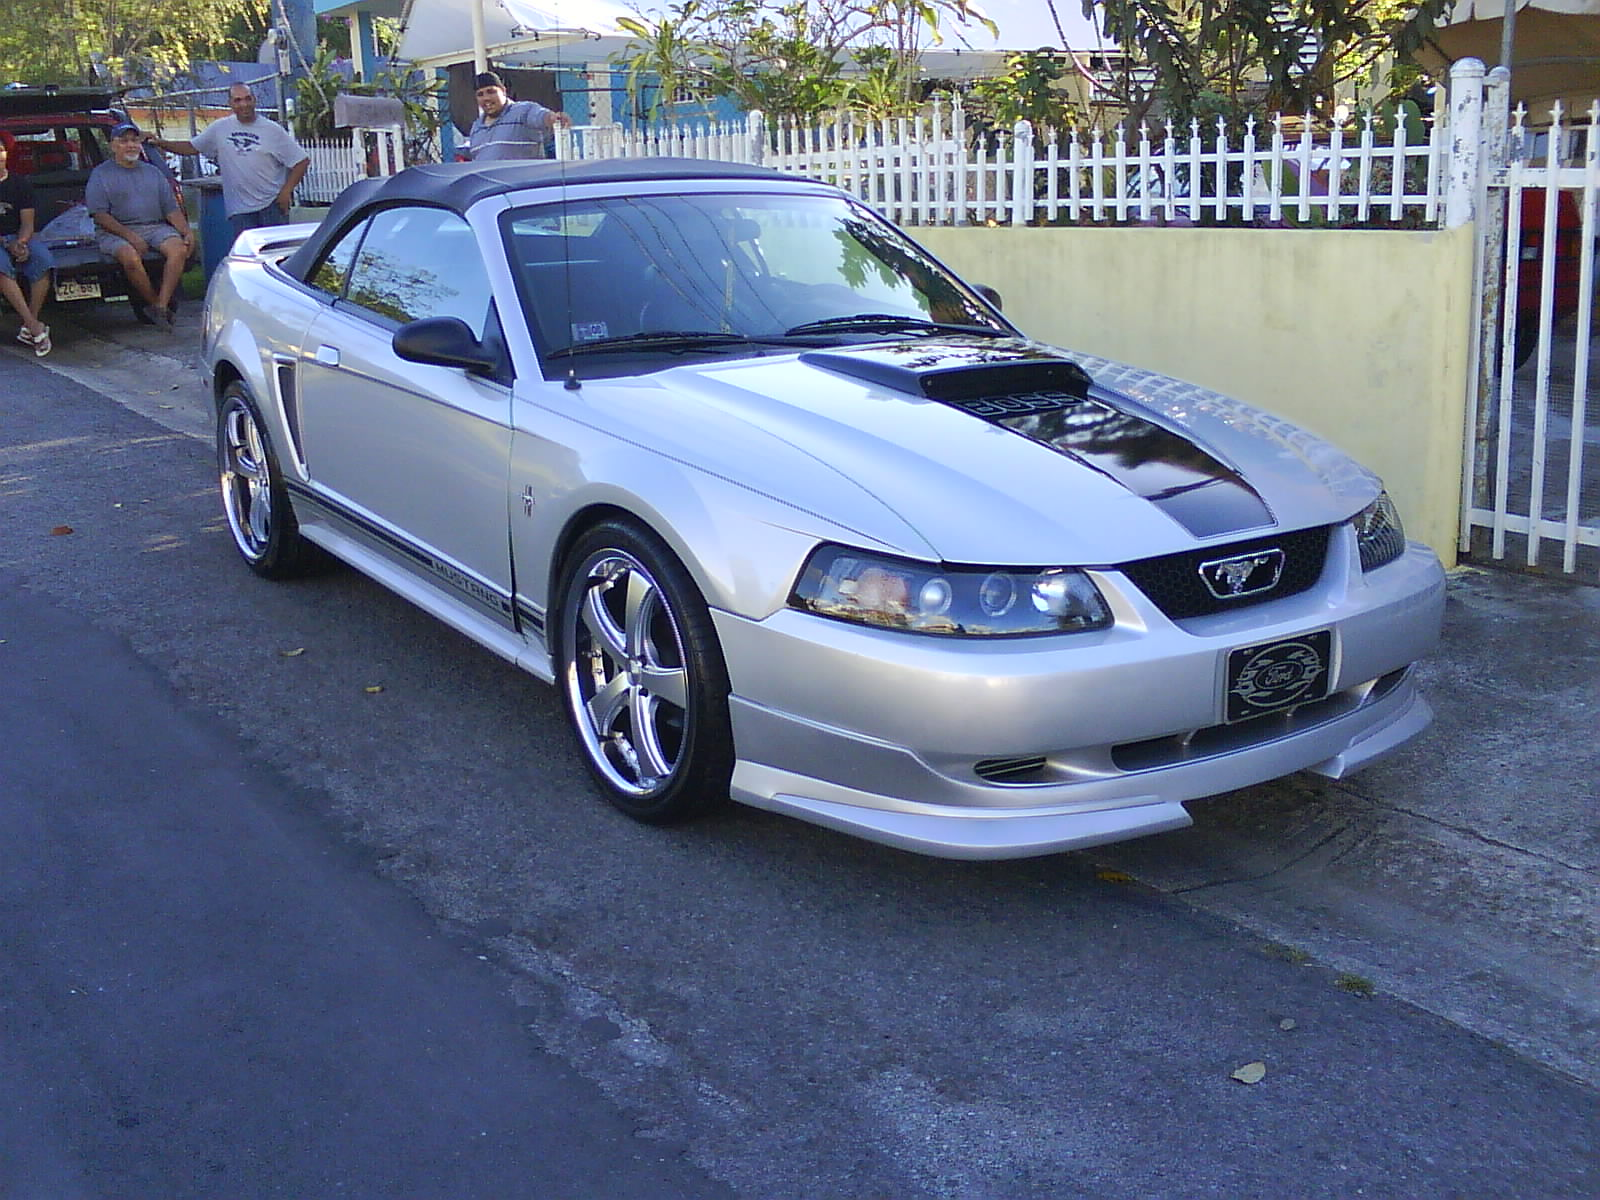 Picture of 2000 Ford Mustang GT Convertible, exterior